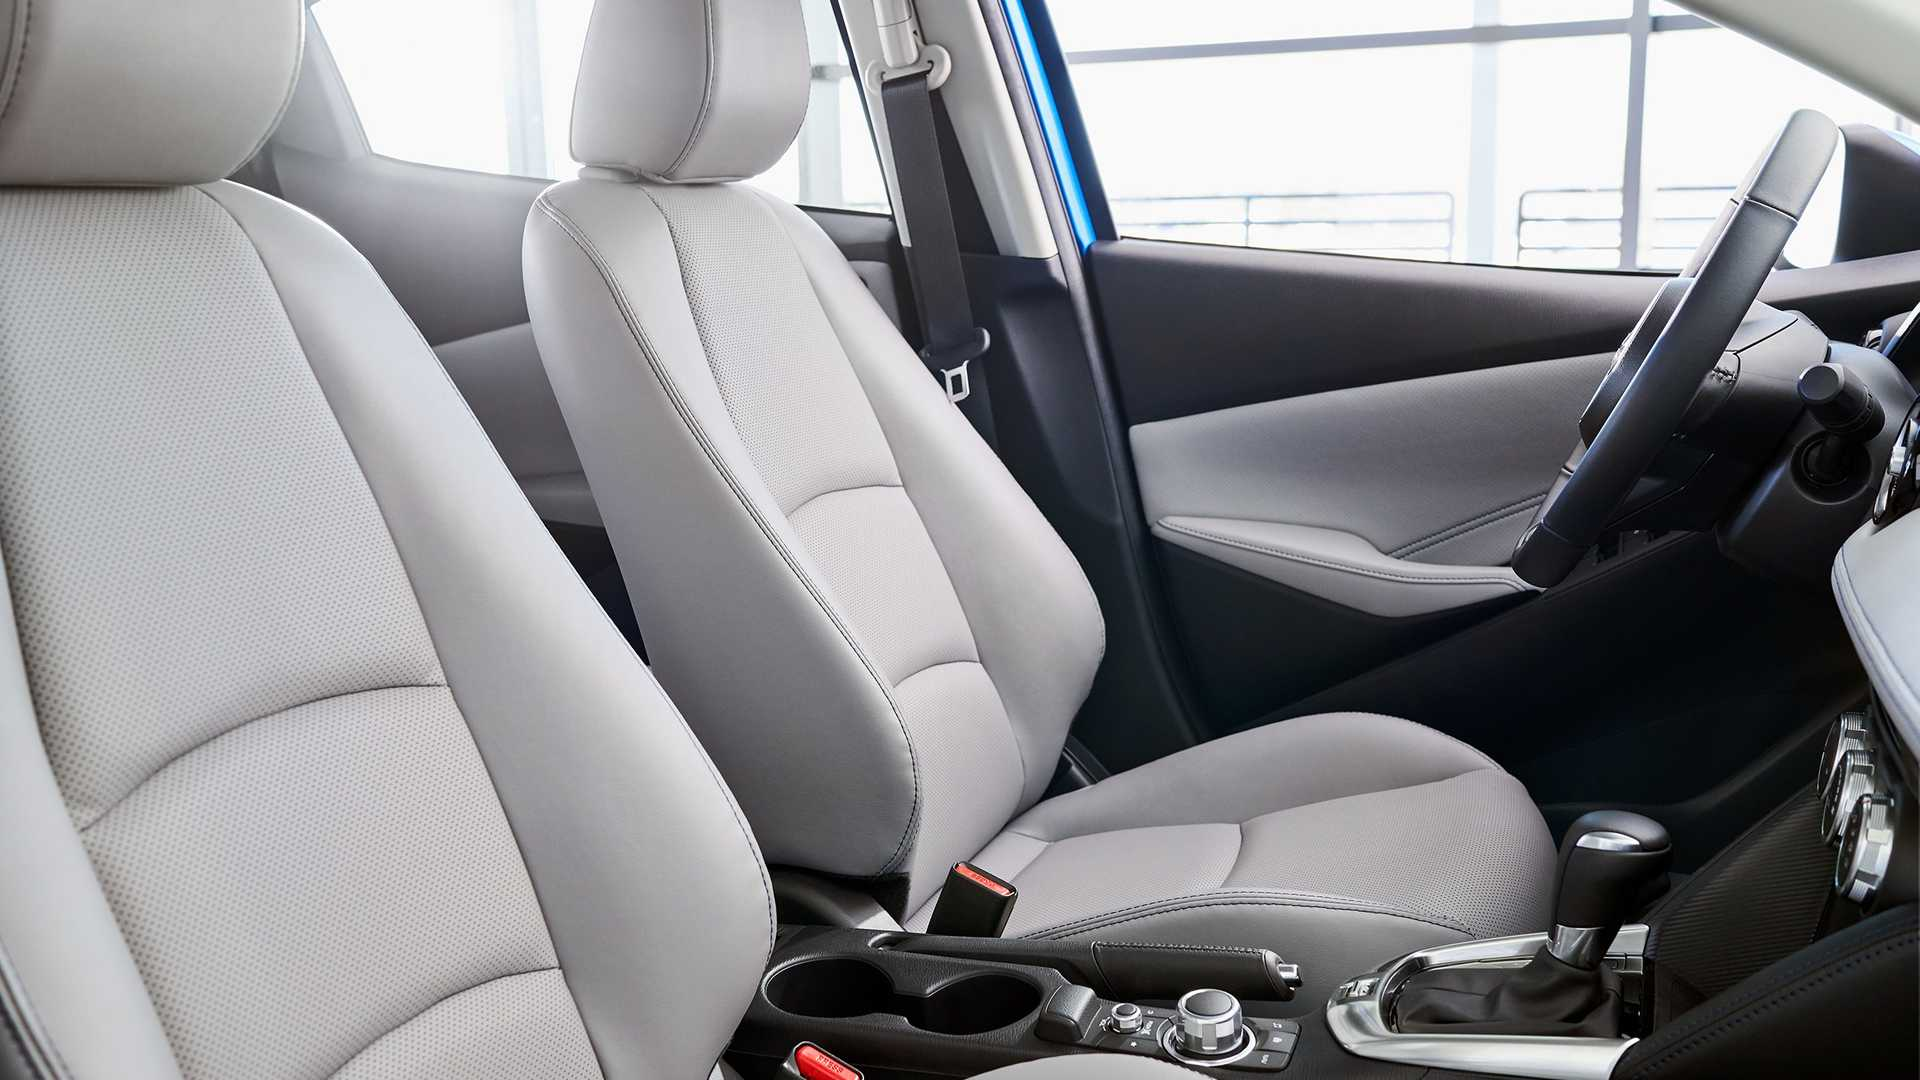 2020 Toyota Yaris Hatchback Interior Cockpit Wallpapers (10)